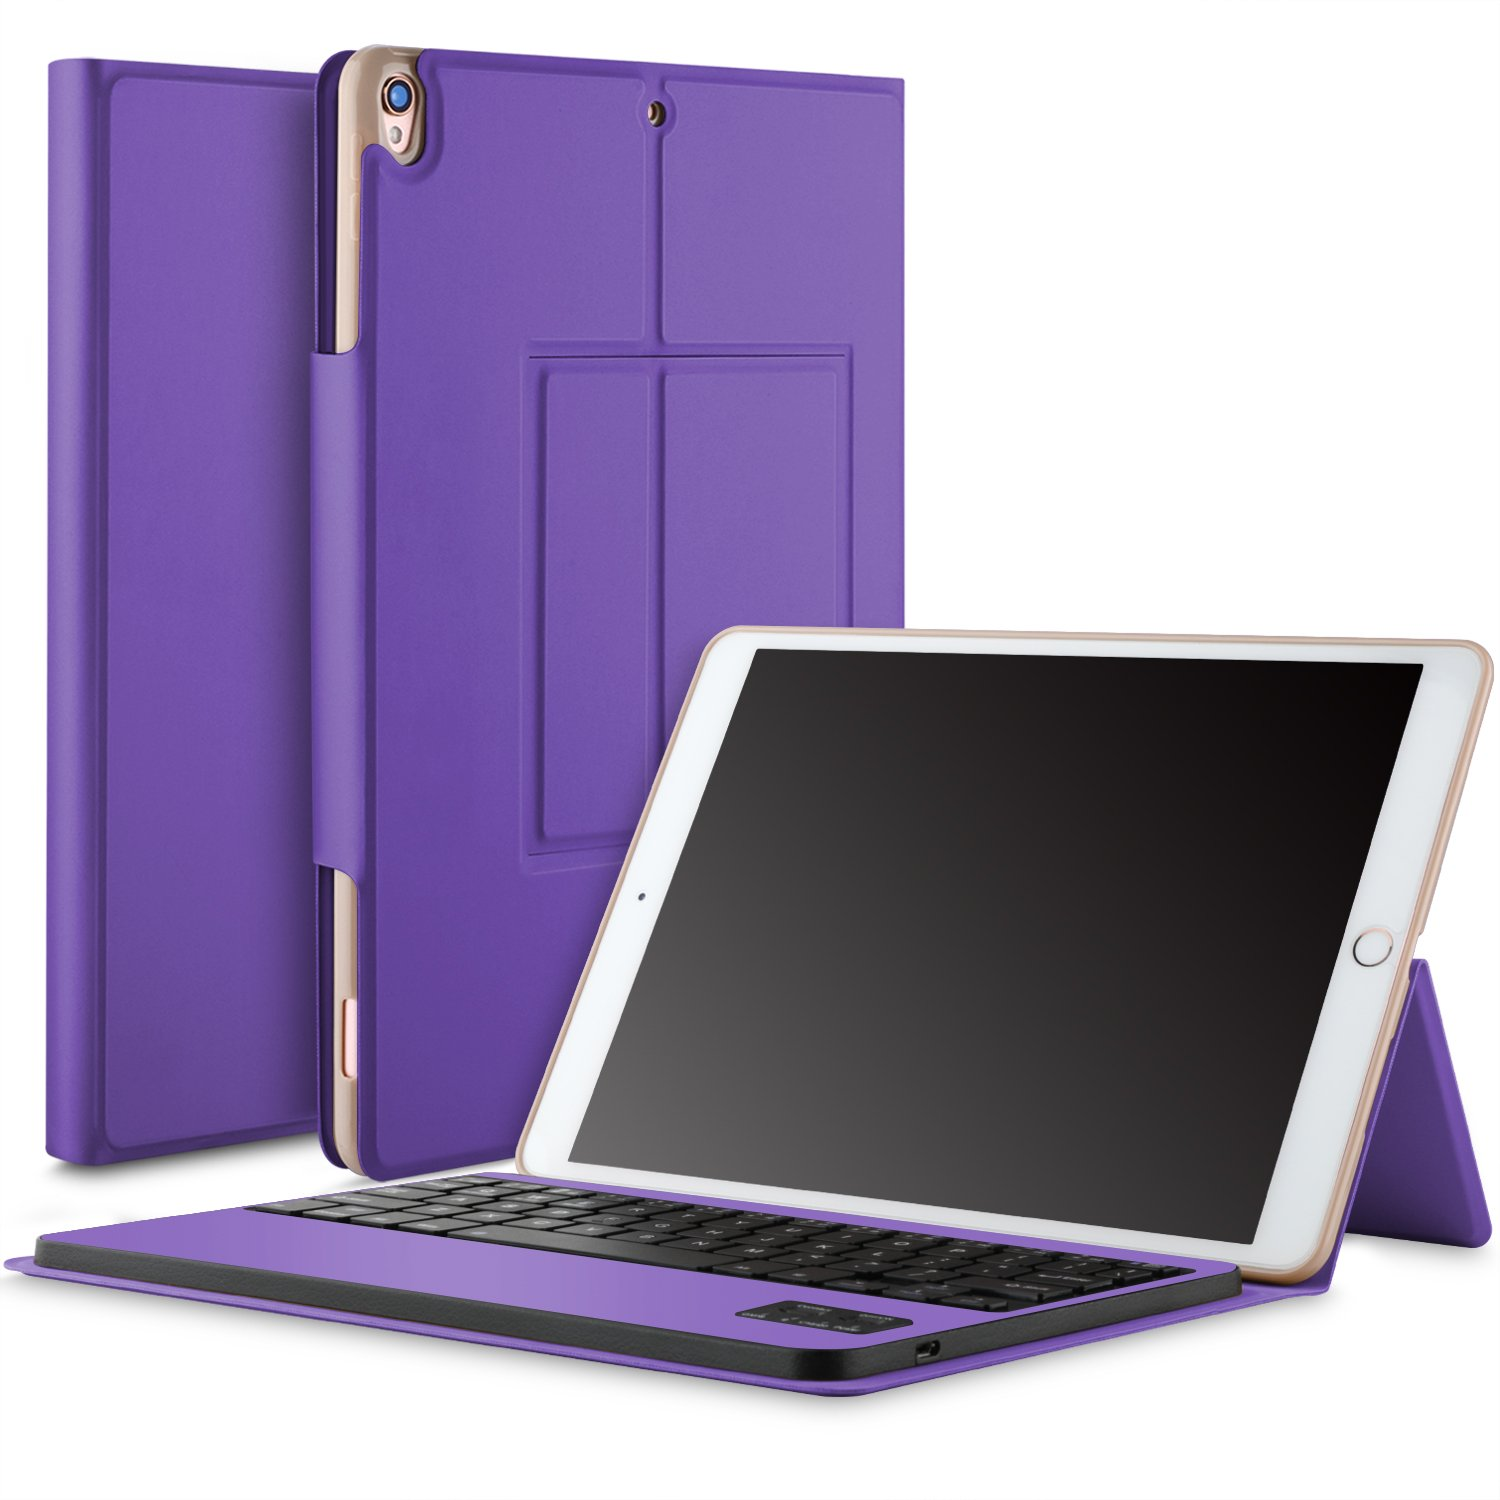 IVSO Apple iPad Pro 10.5 Keyboard Case, Ultra-Thin DETACHABLE Wireless Keyboard Stand Case/Cover + Pencil holder for Apple iPad Pro 10.5-inch 2017 Version Tablet (Purple)